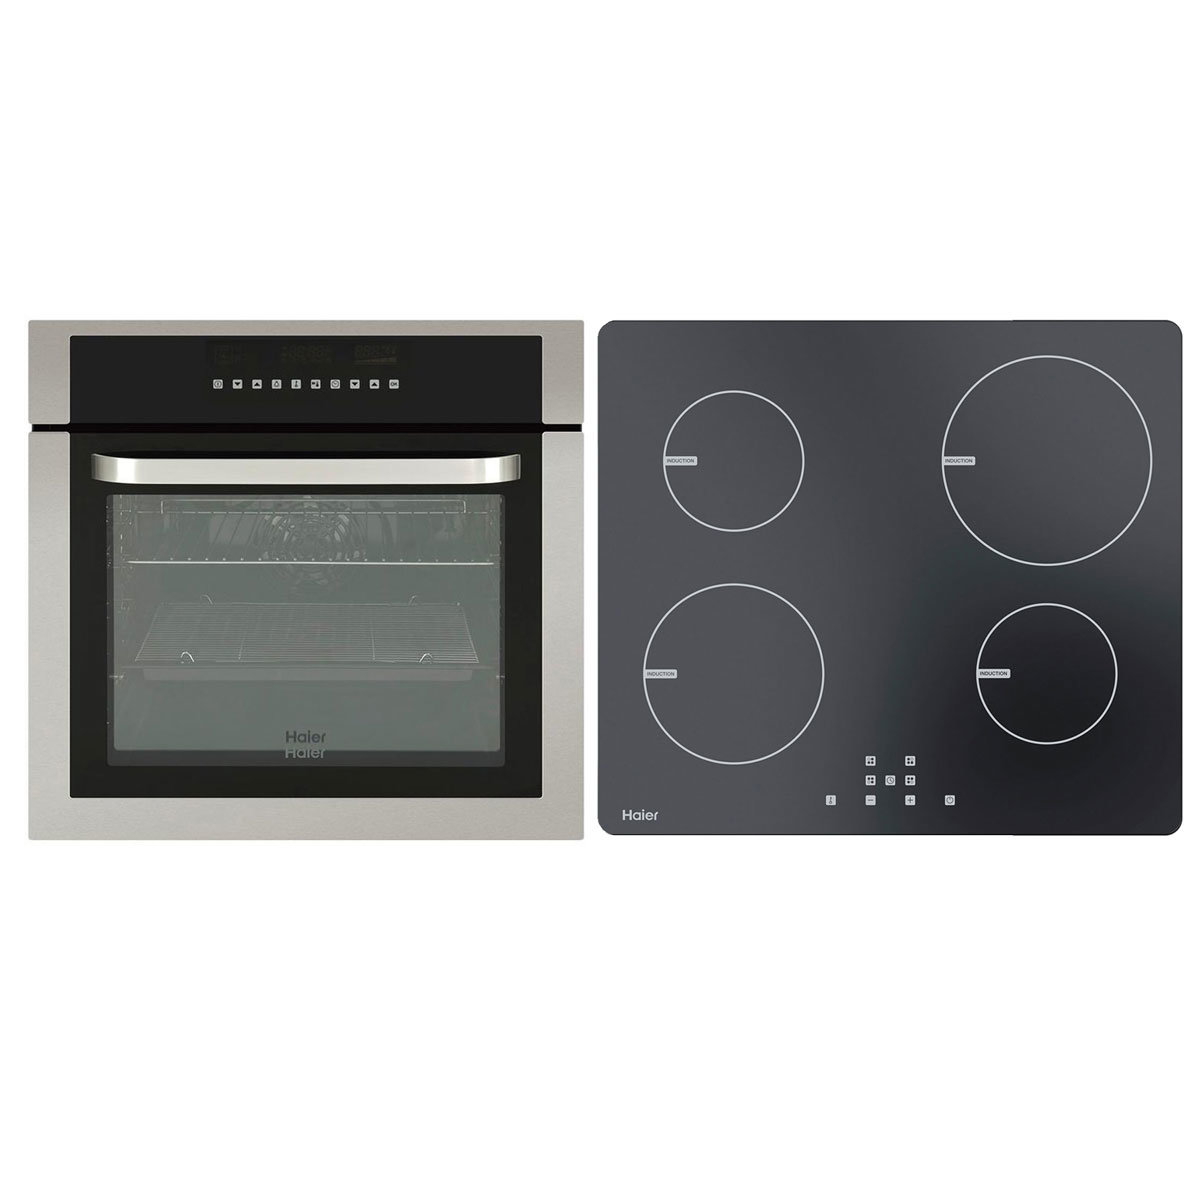 70cm Induction Cooktop Haier 60cm Pyrolytic Oven 60cm Induction Cooktop Pack Hwo60s11tpx1hci604tb